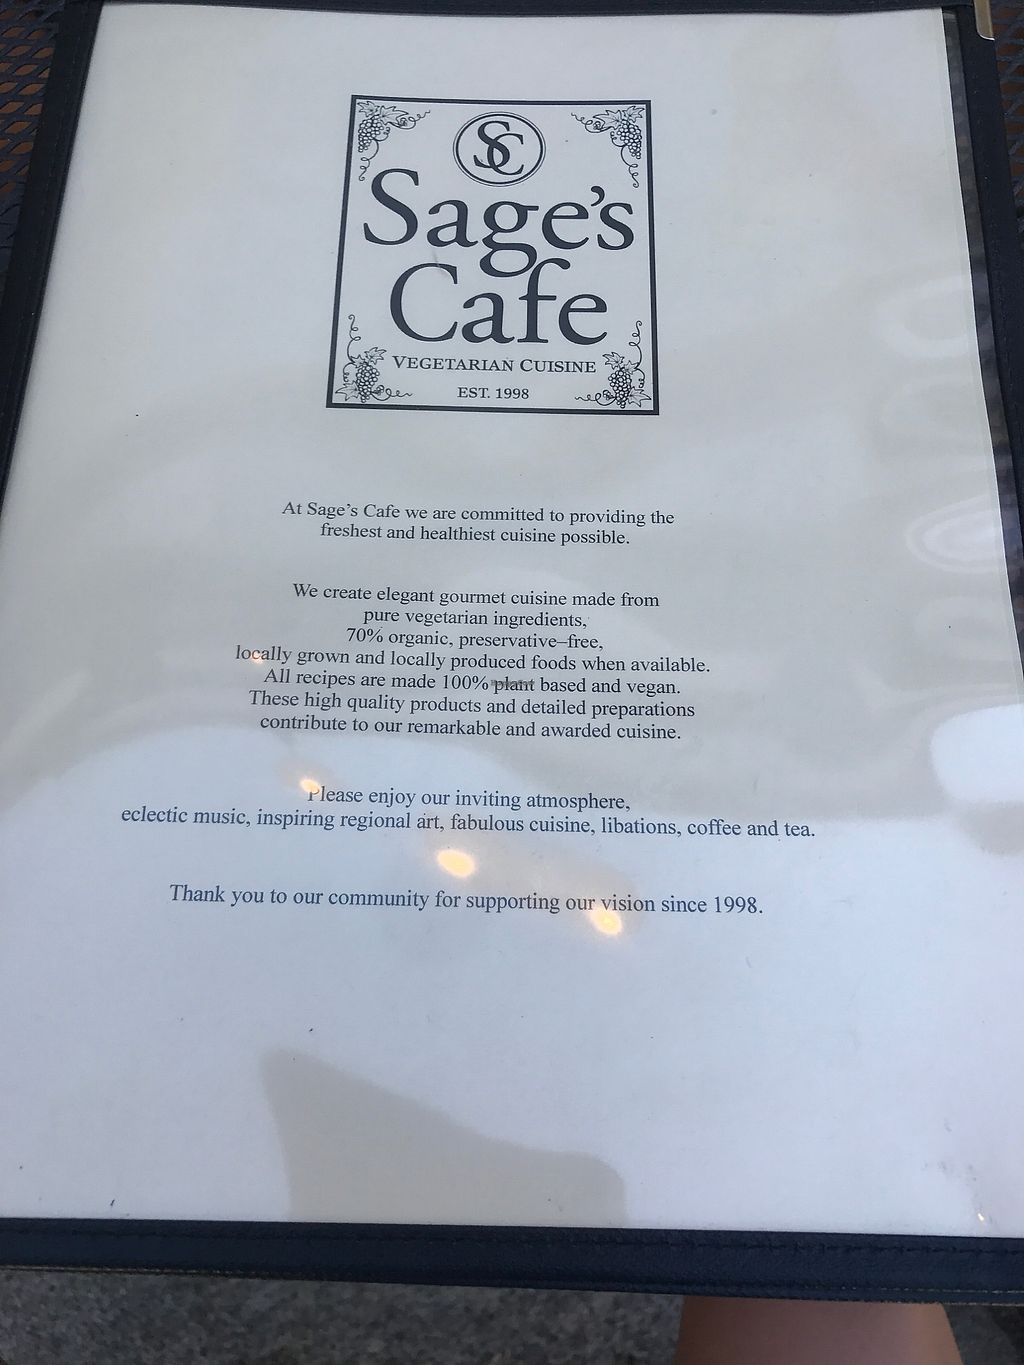 """Photo of Sage's Cafe  by <a href=""""/members/profile/SlaterDouglas"""">SlaterDouglas</a> <br/>Menu cover <br/> July 30, 2017  - <a href='/contact/abuse/image/2564/286518'>Report</a>"""